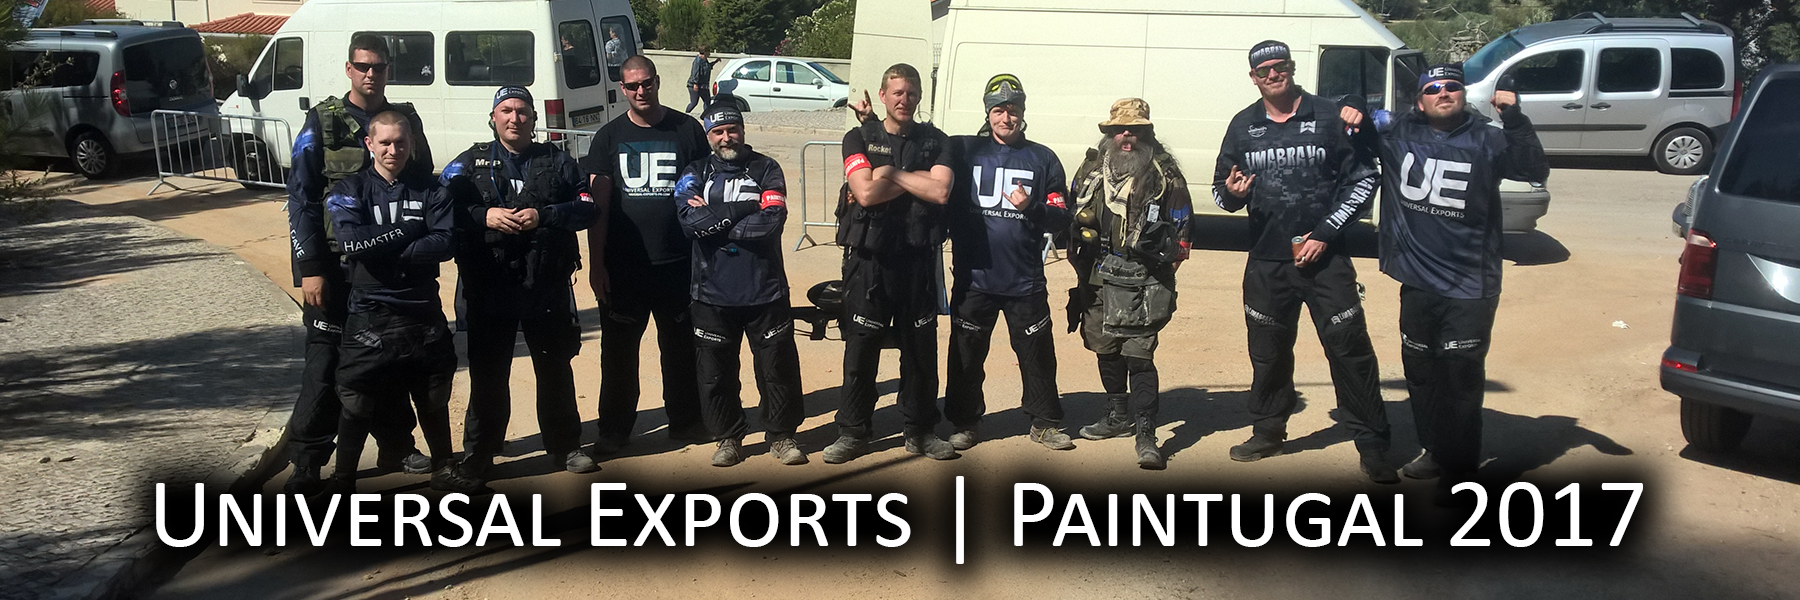 Universal Exports : Paintugal 2017